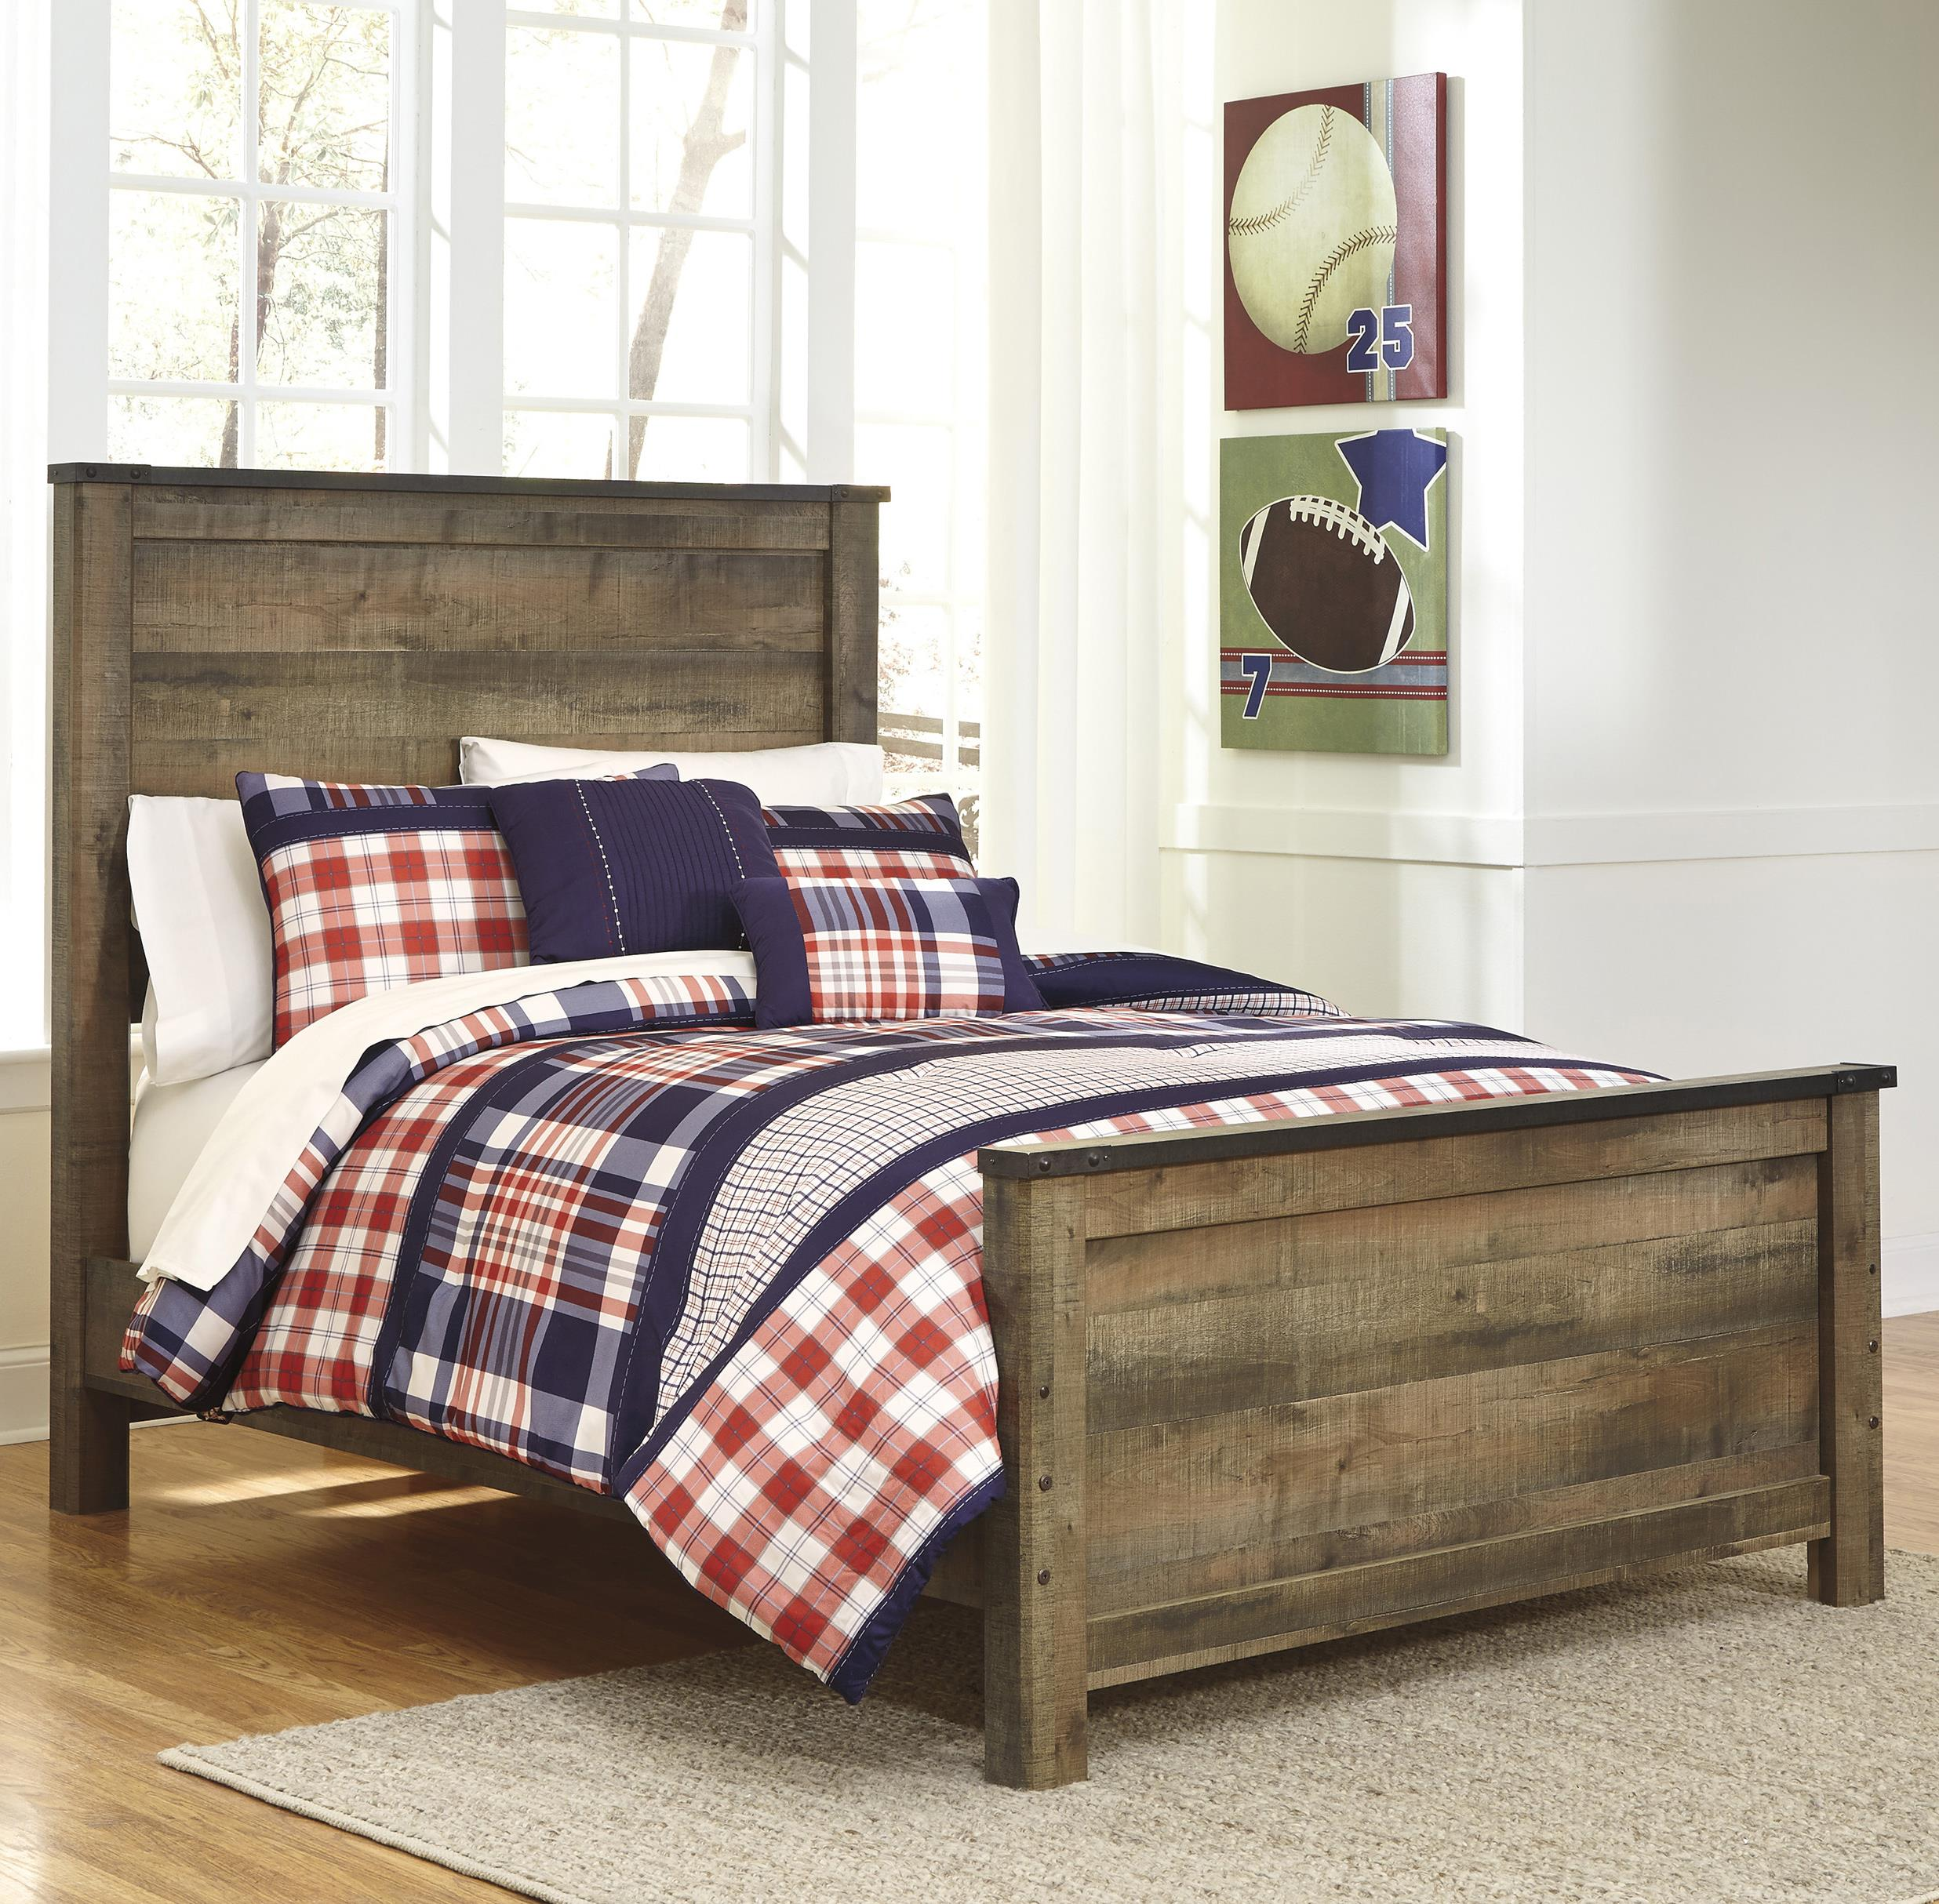 Signature design by ashley trinell rustic look full panel - Ashley furniture full bedroom sets ...